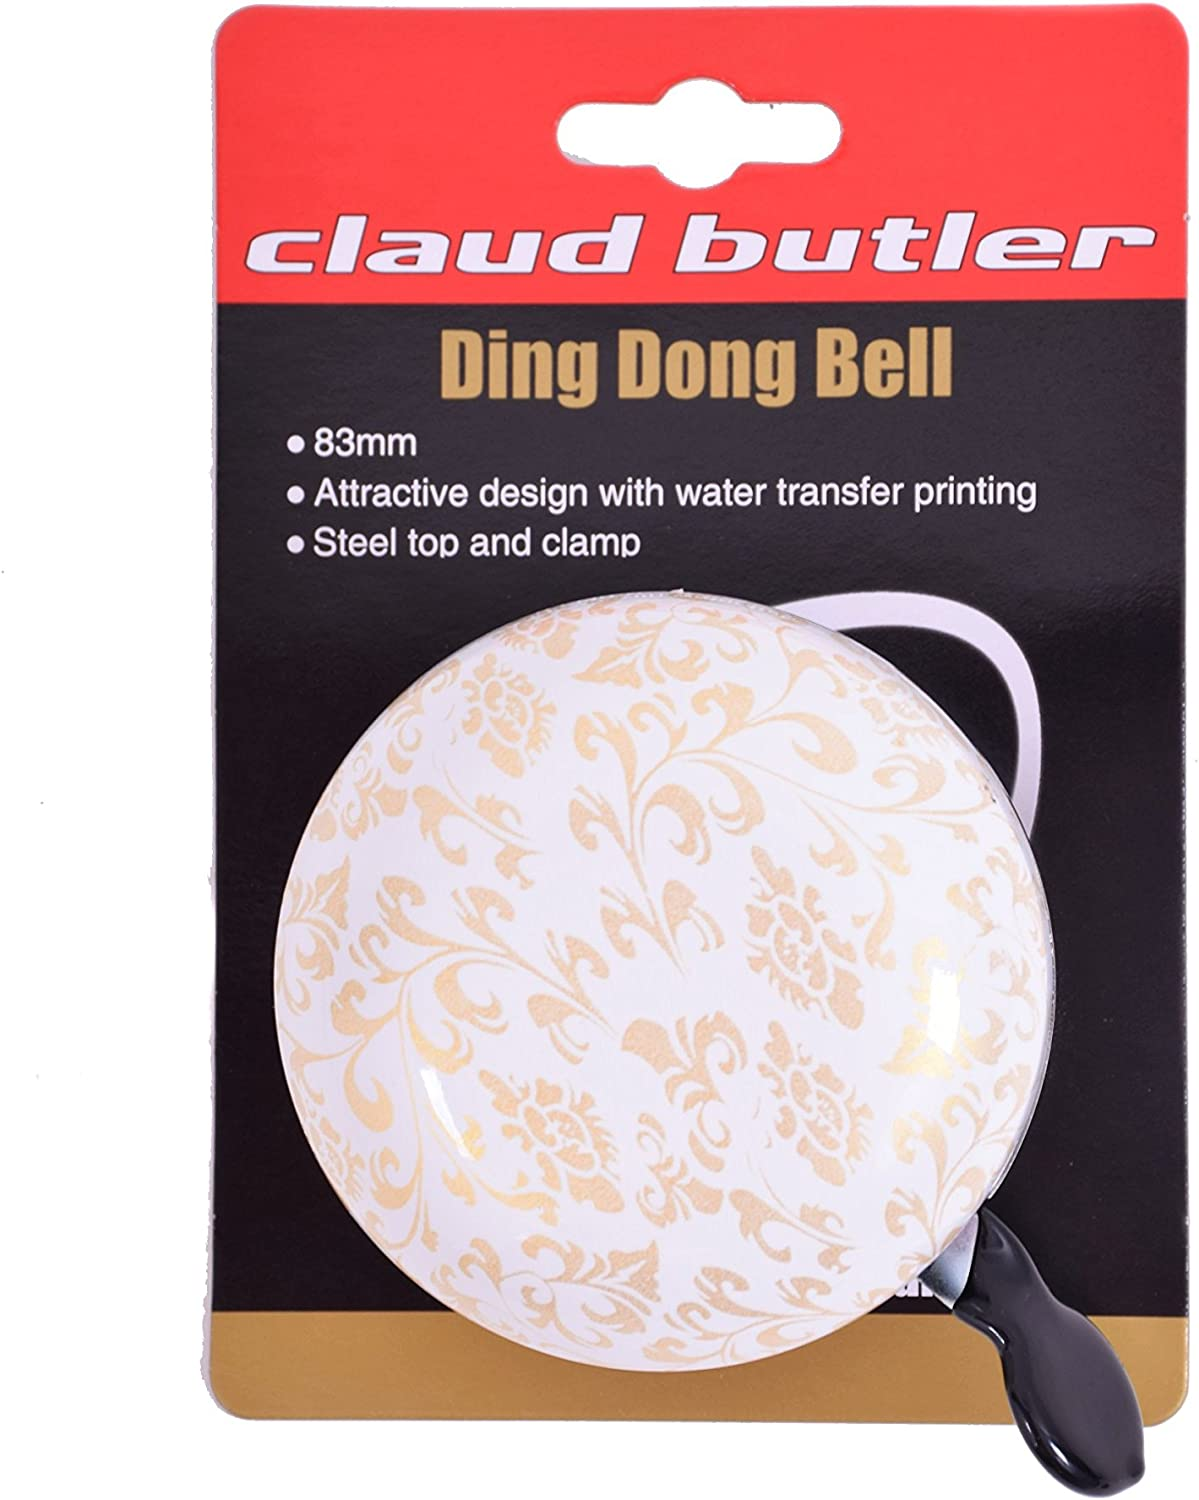 Quality Claud Butler Cycling Ding Dong Traditional Vintage Large Gold Womens Bike Bell 22.2mm